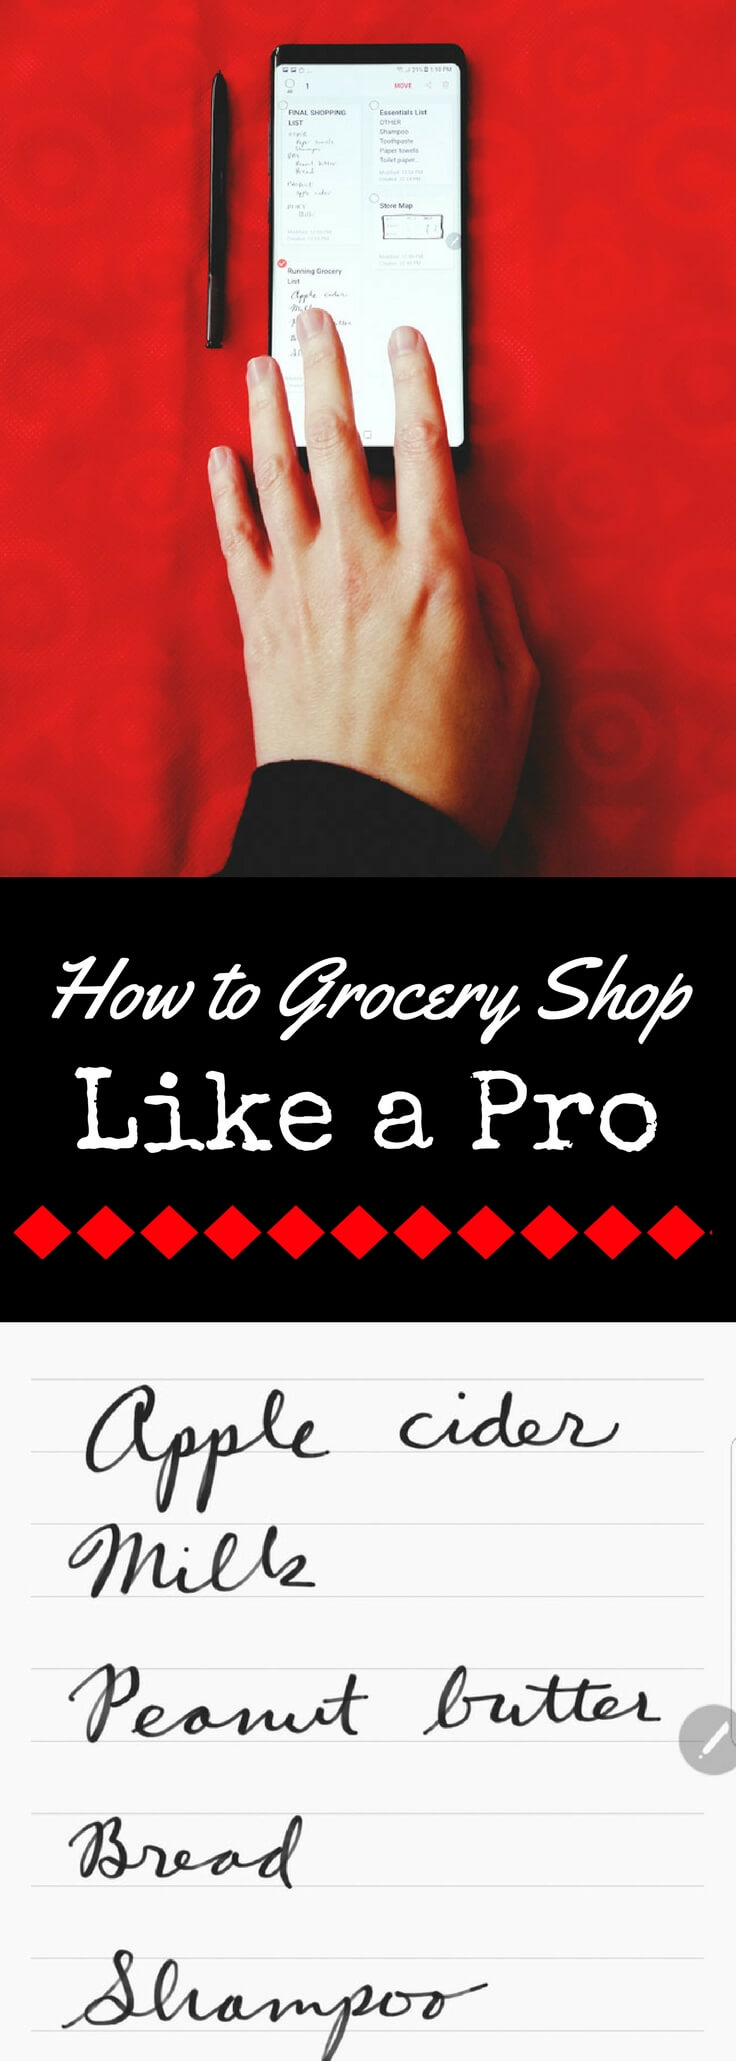 Want to learn how to grocery shop like a pro?  Get the secrets to making grocery shopping fast, affordable, and efficient.